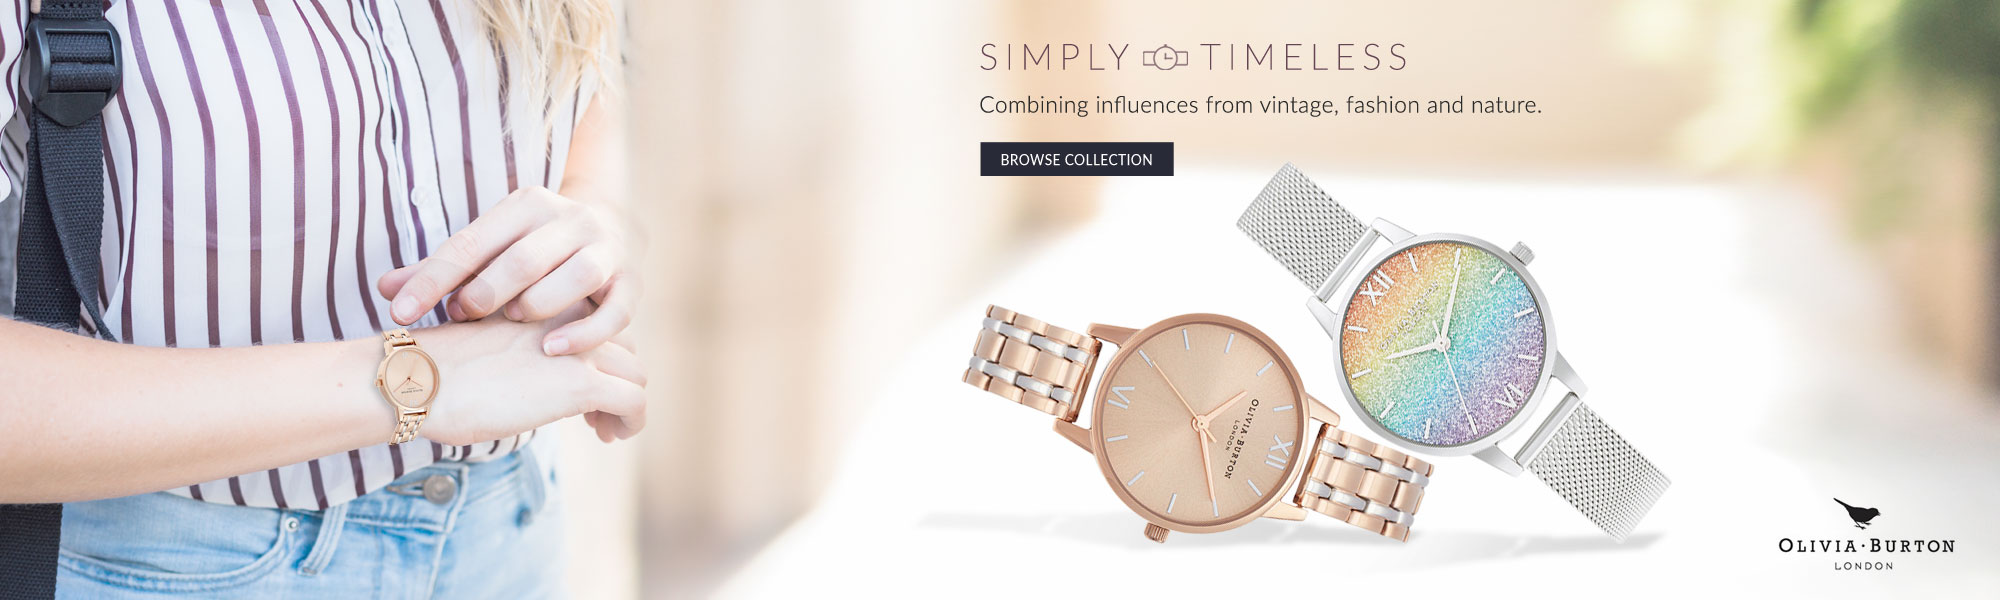 Shop Olivia Burton Watches At Diamond World In Glenorchy, TAS